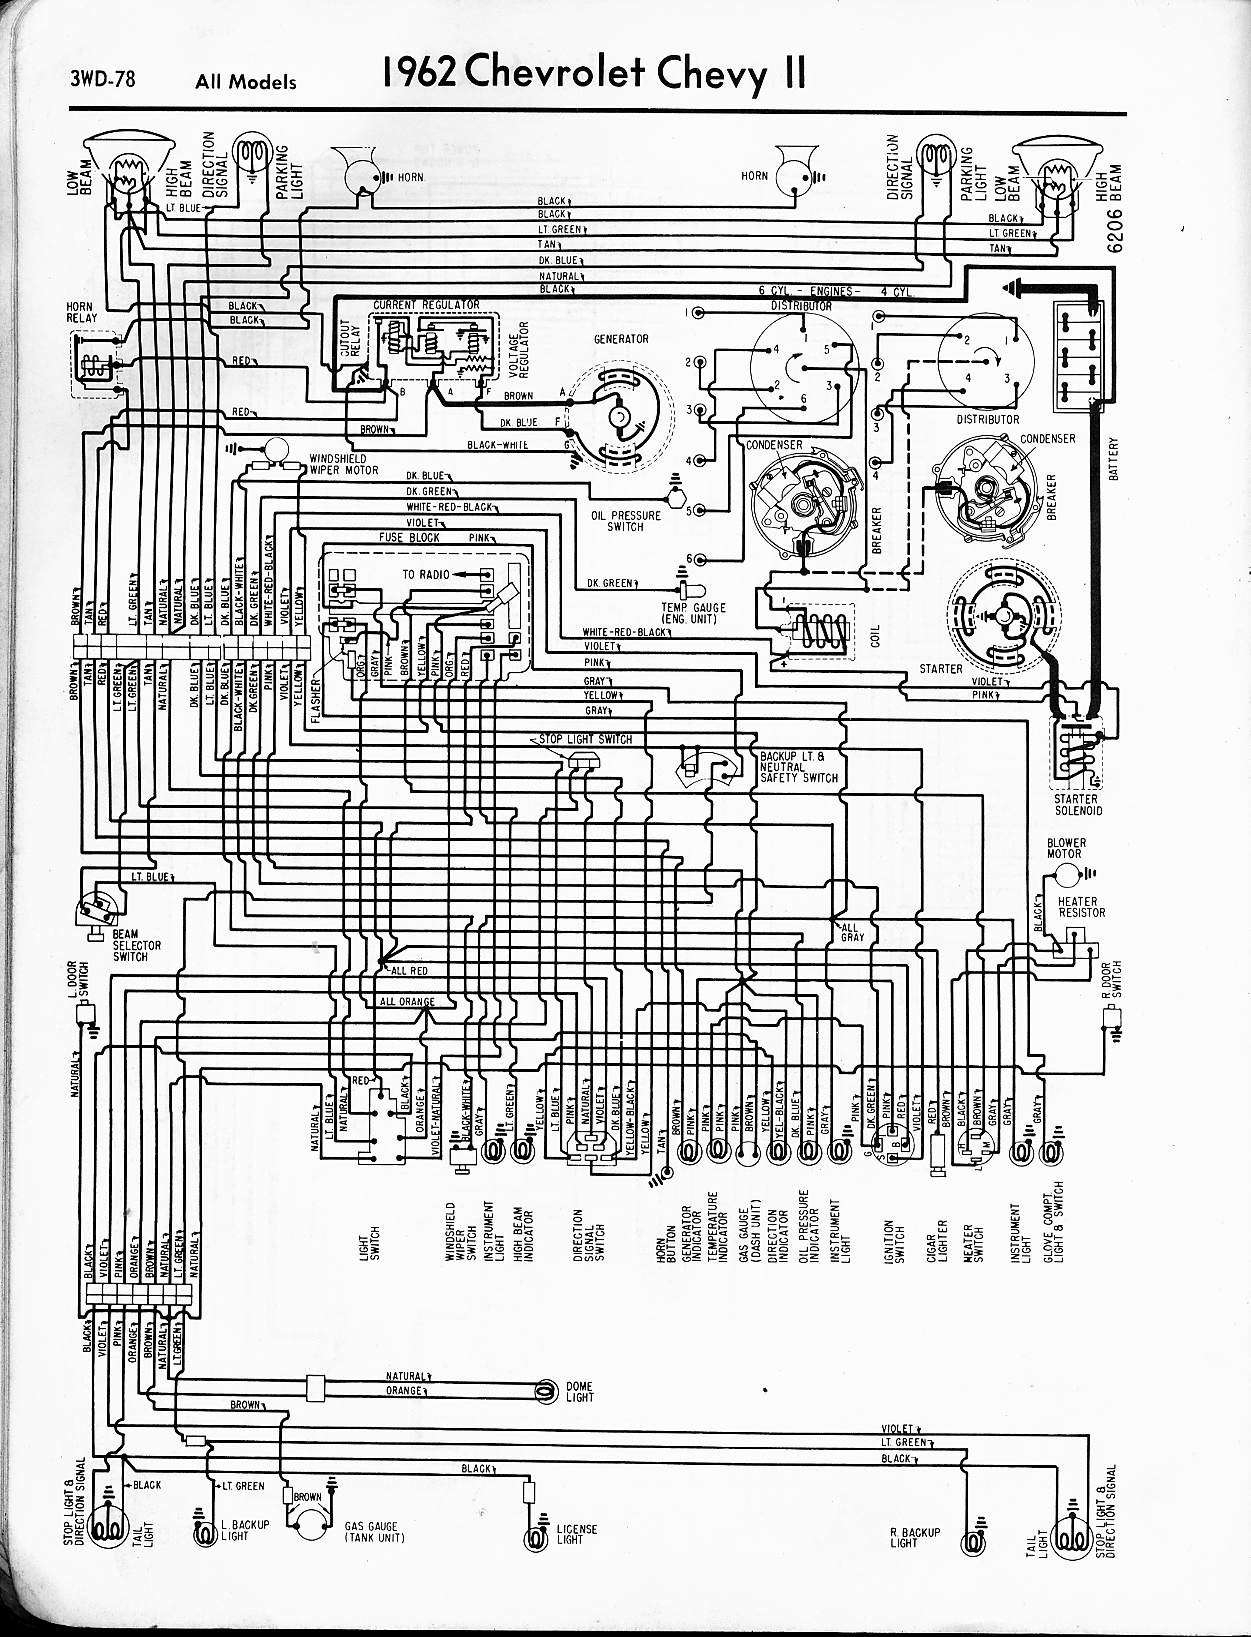 1970 Camaro Wiring Schematic - 9.xeghaqqt.petportal.info • on dodge charger diagram, dodge dakota wiring schematic, dodge diesel wiring schematic, car charger schematic, dodge ram wiring schematic, dodge charger bug, dodge charger relay, dodge charger throttle position sensor, dodge caravan wiring schematic, dodge wiring diagrams, dodge charger speaker, dodge charger turn signal, dodge challenger wiring schematic, dodge durango wiring schematic, dodge dart wiring schematic, dodge charger voltage regulator, dodge charger fuse, dodge charger brake light, dodge 440 wiring schematic, dodge neon wiring schematic,